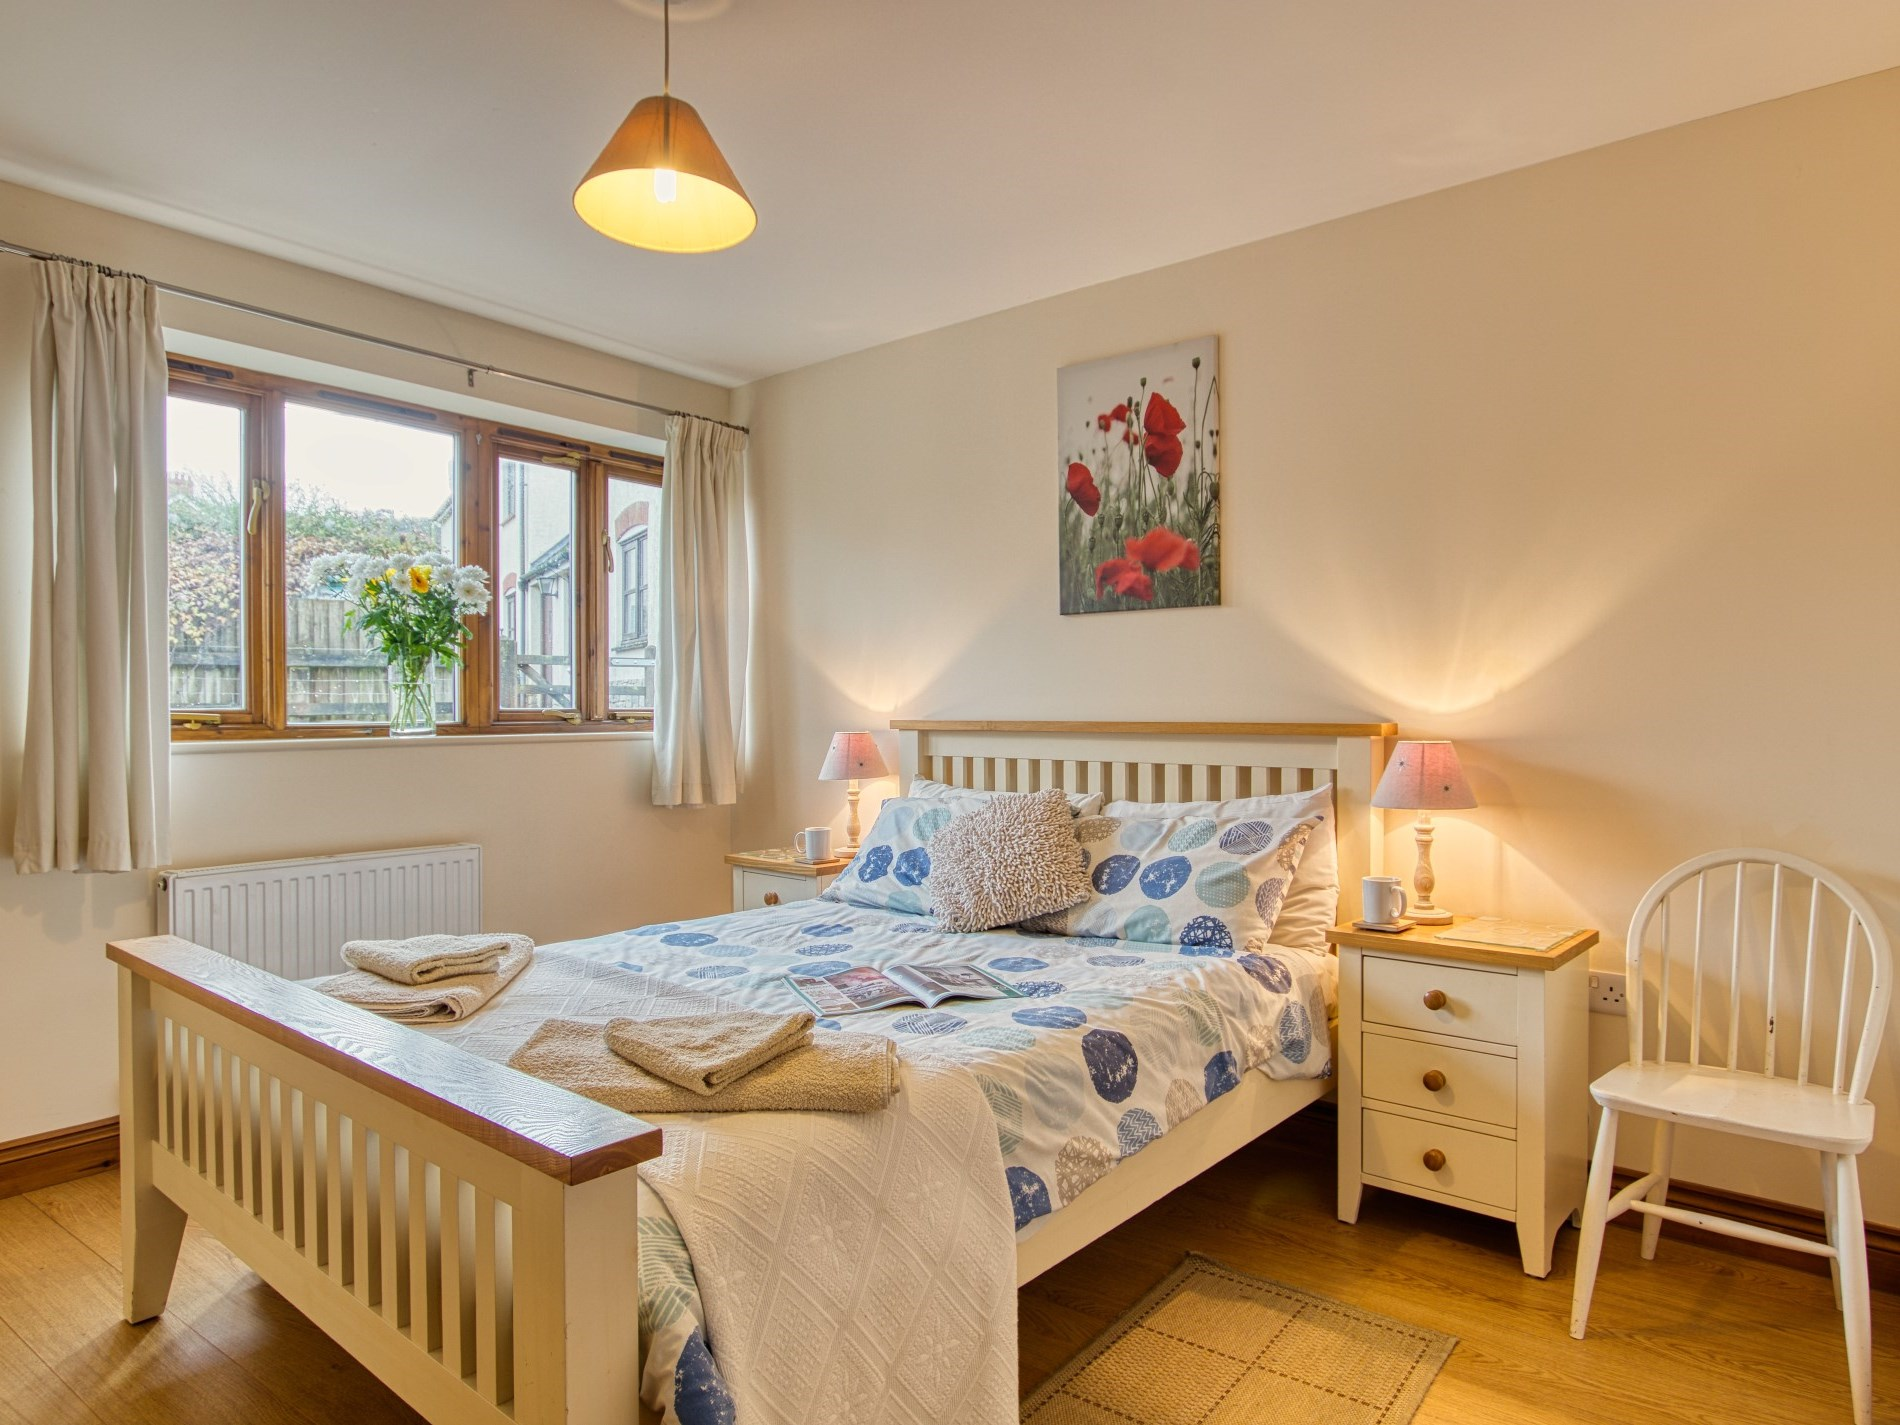 3 Bedroom Cottage in Bridport, Dorset and Somerset